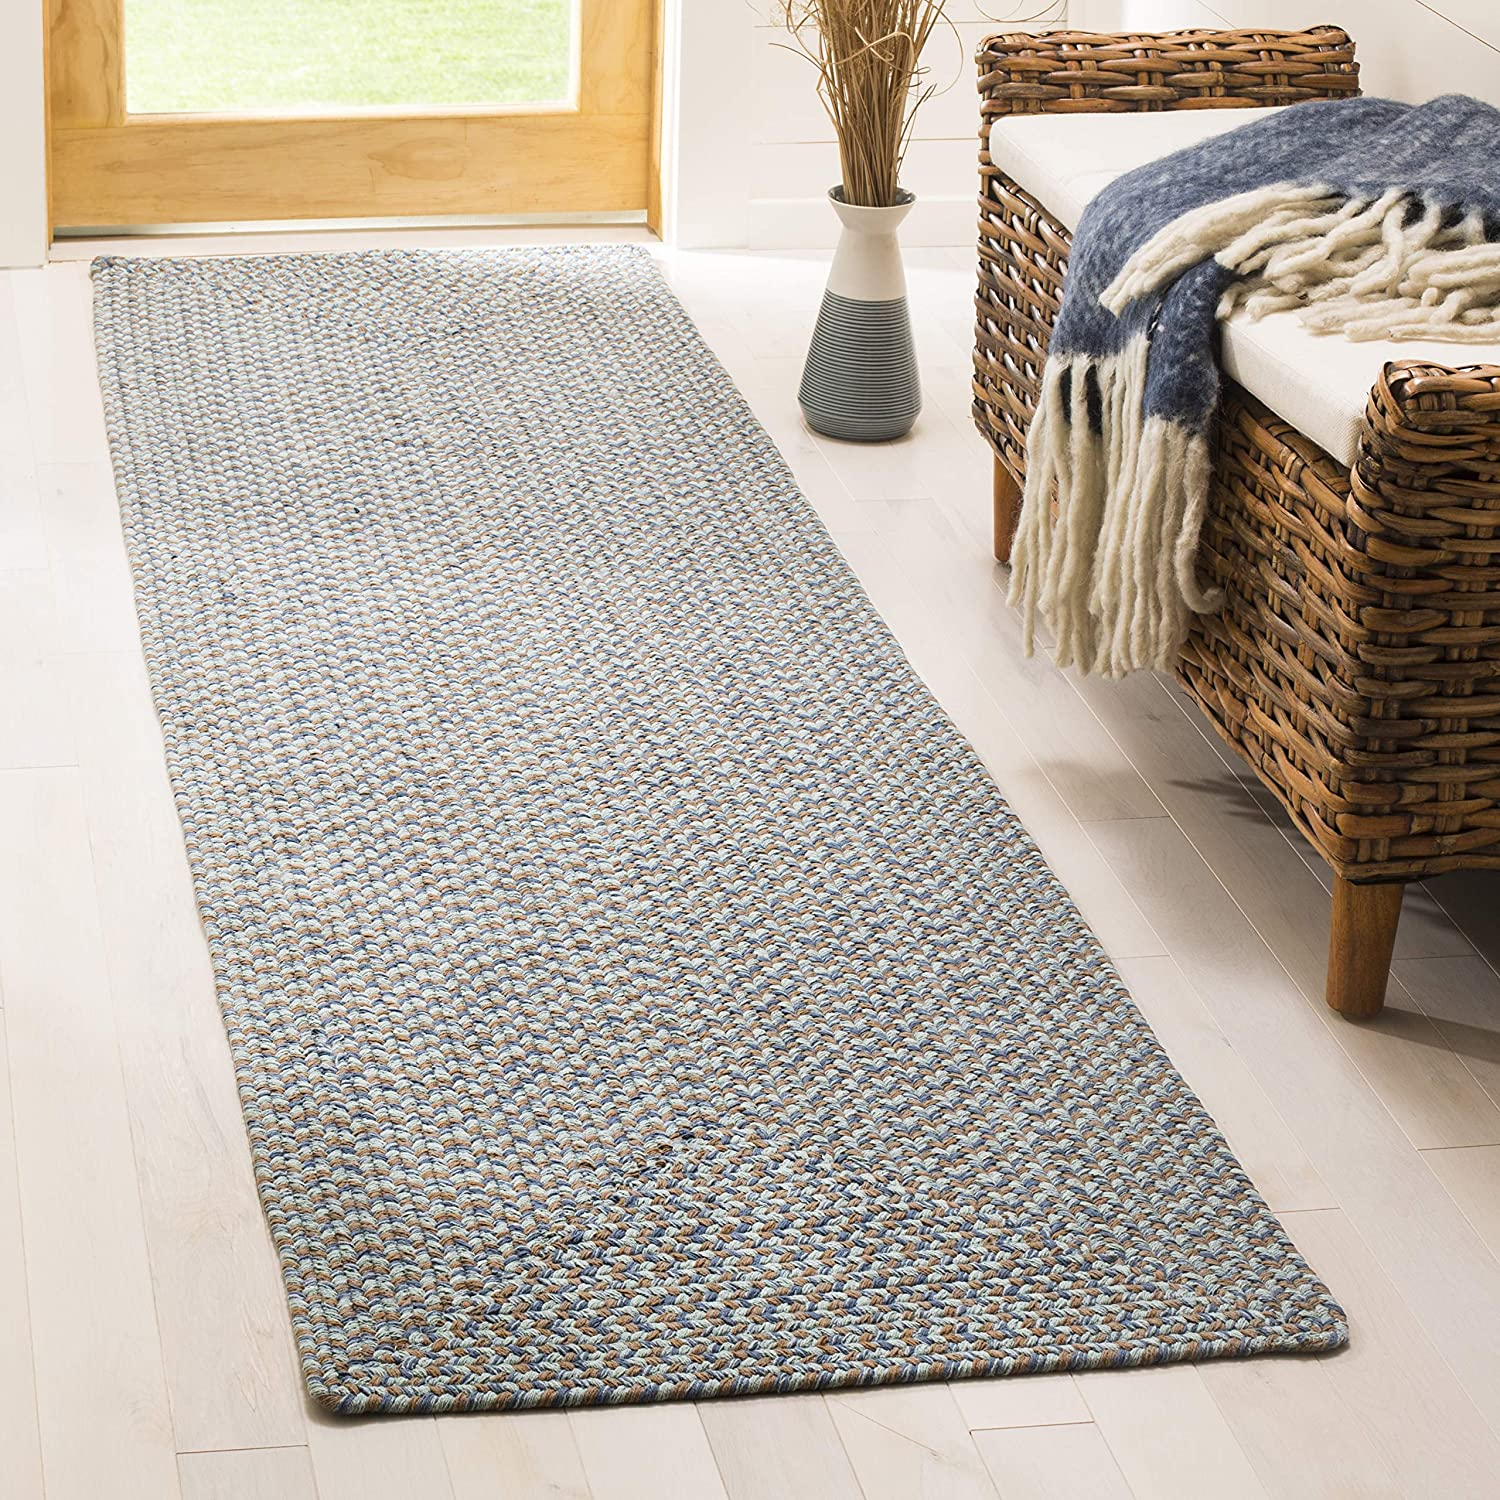 Safavieh Braided Collection BRD170A New arrival New Free Shipping Cottage Handmade Rev Country